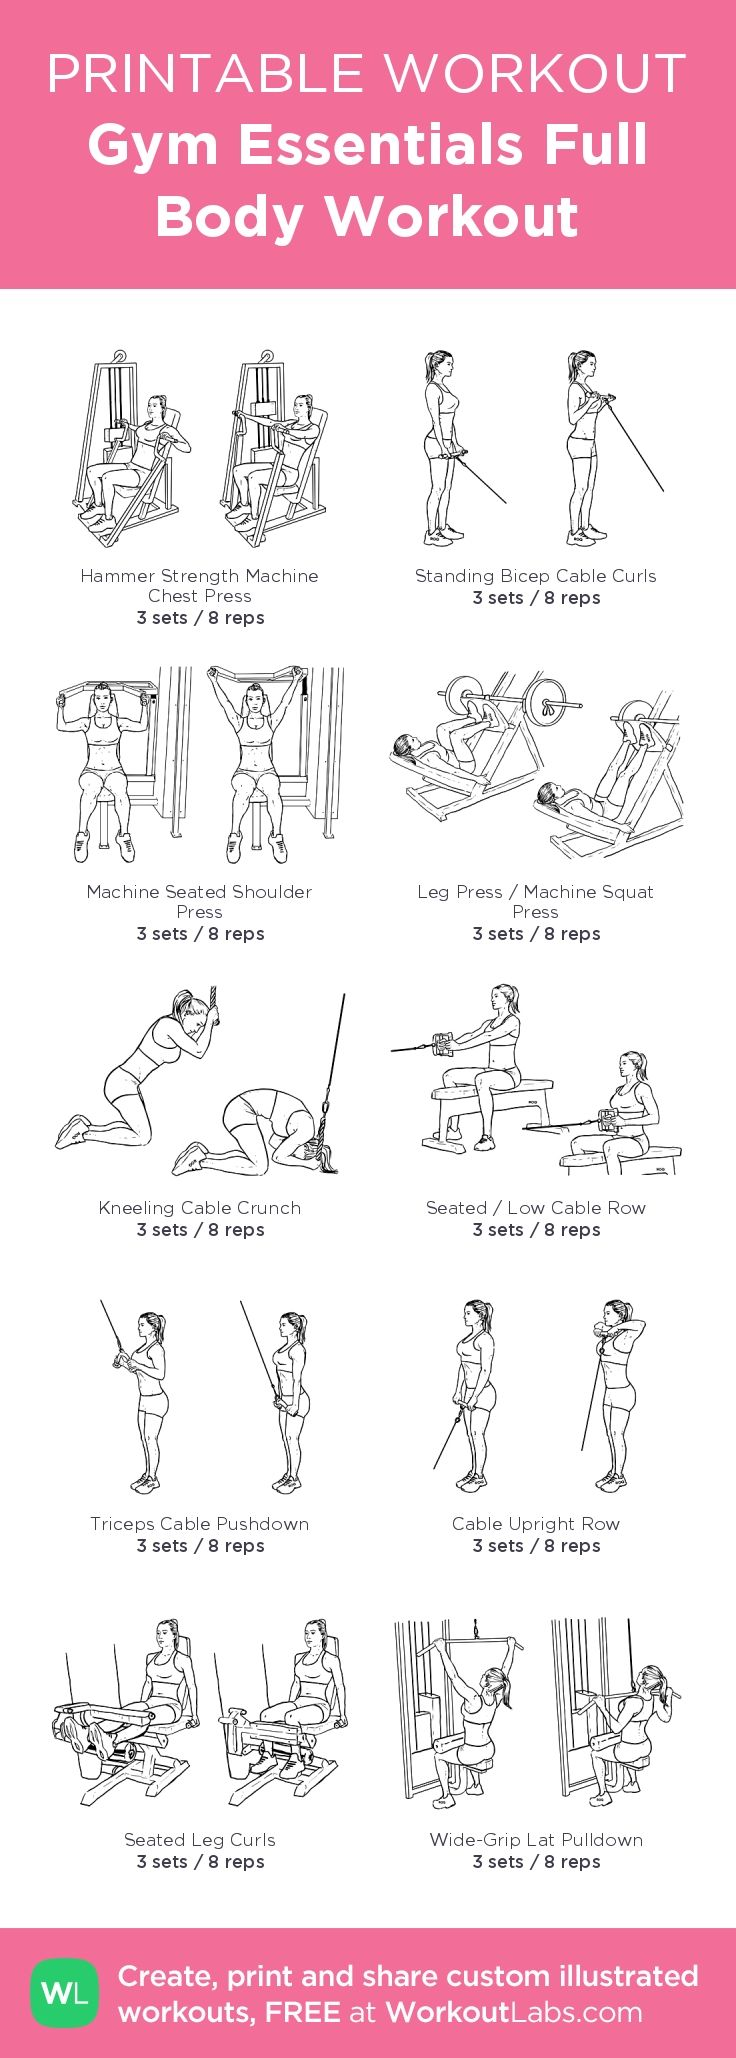 Gym Essentials Full Body Workout: my visual workout created at WorkoutLabs.com \u2022 Click through to customize and download as a FREE PDF! #customworko #weightlosstips